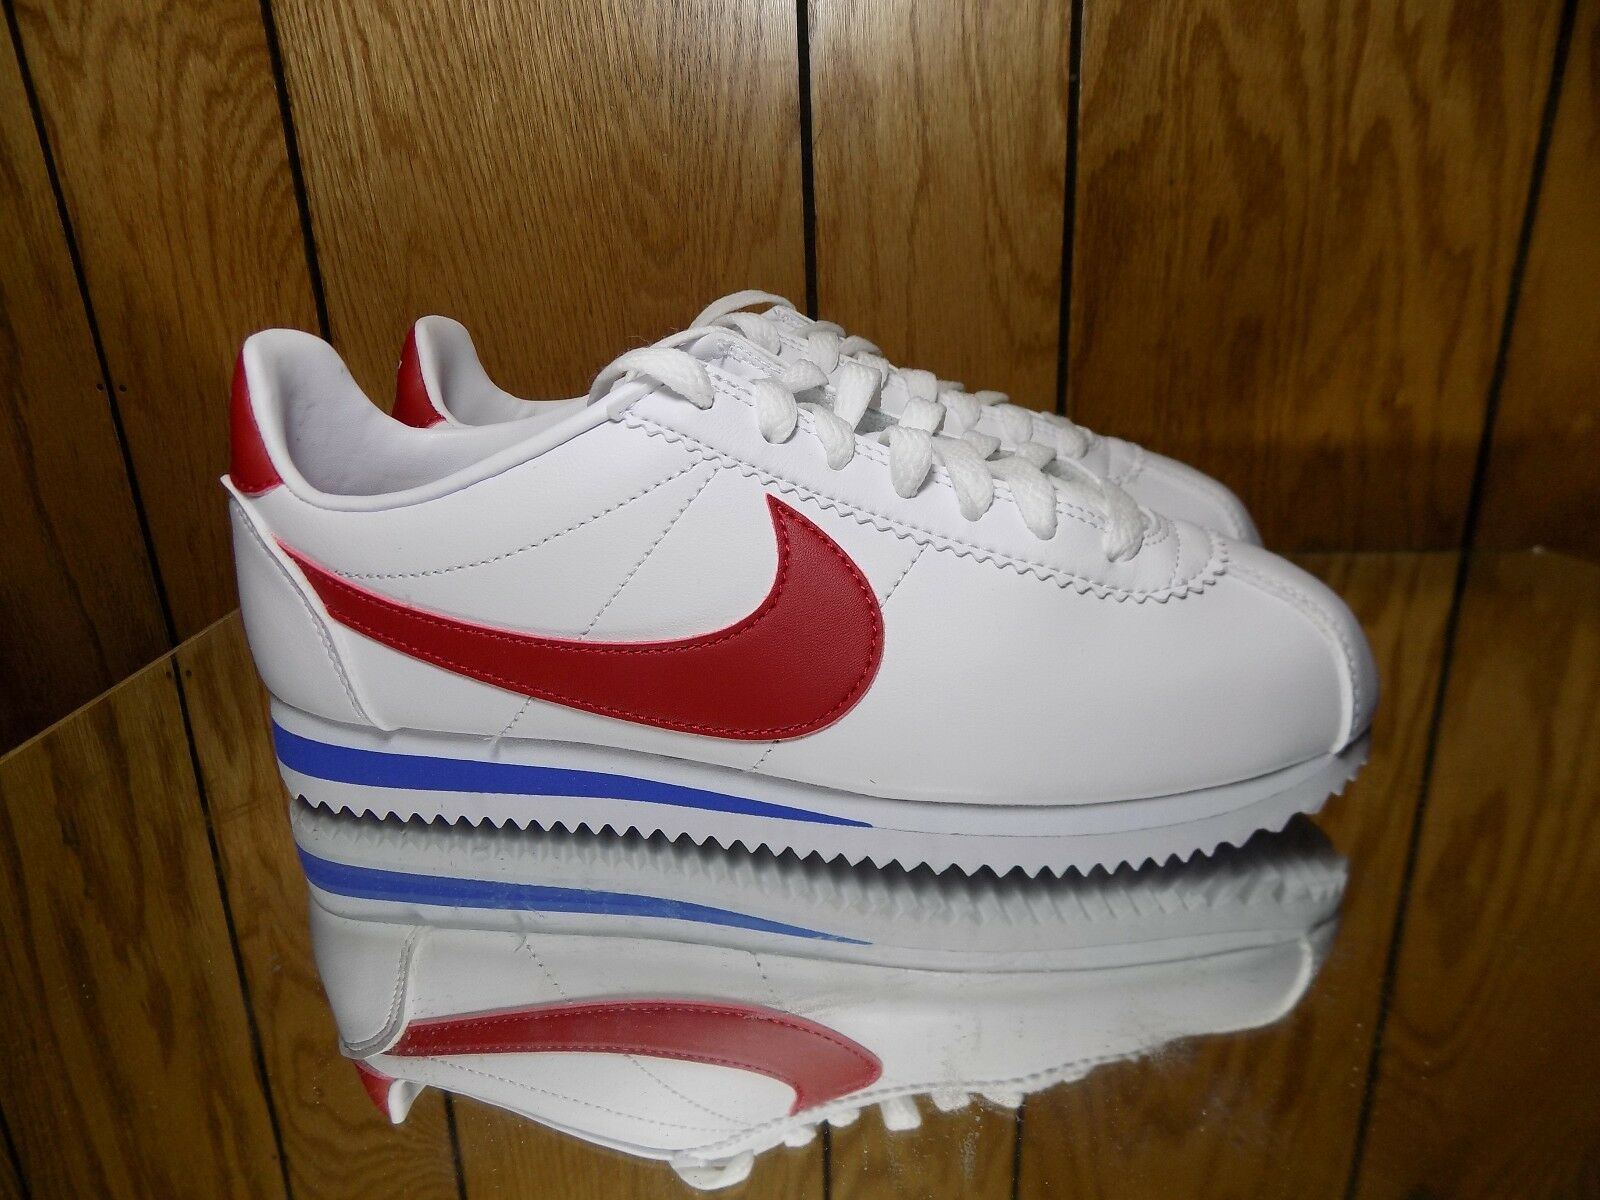 NIKE WOMEN'S CORTEZ LEATHER WHITE VARSITY RED VARSITY ROYAL 807471-103 Comfortable Special limited time